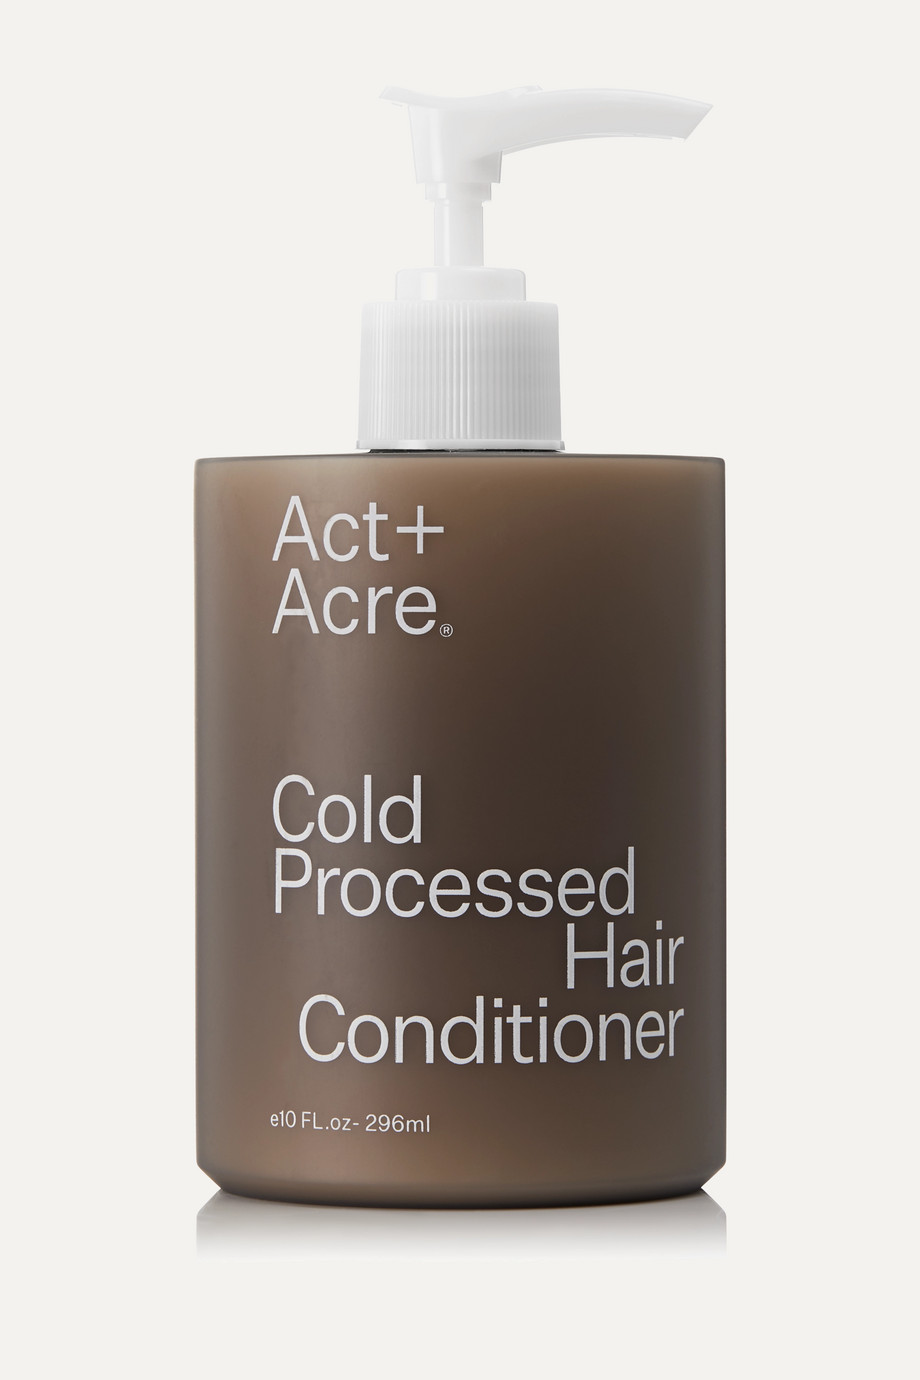 ACT + ACRE Cold Processed Conditioner, 296ml